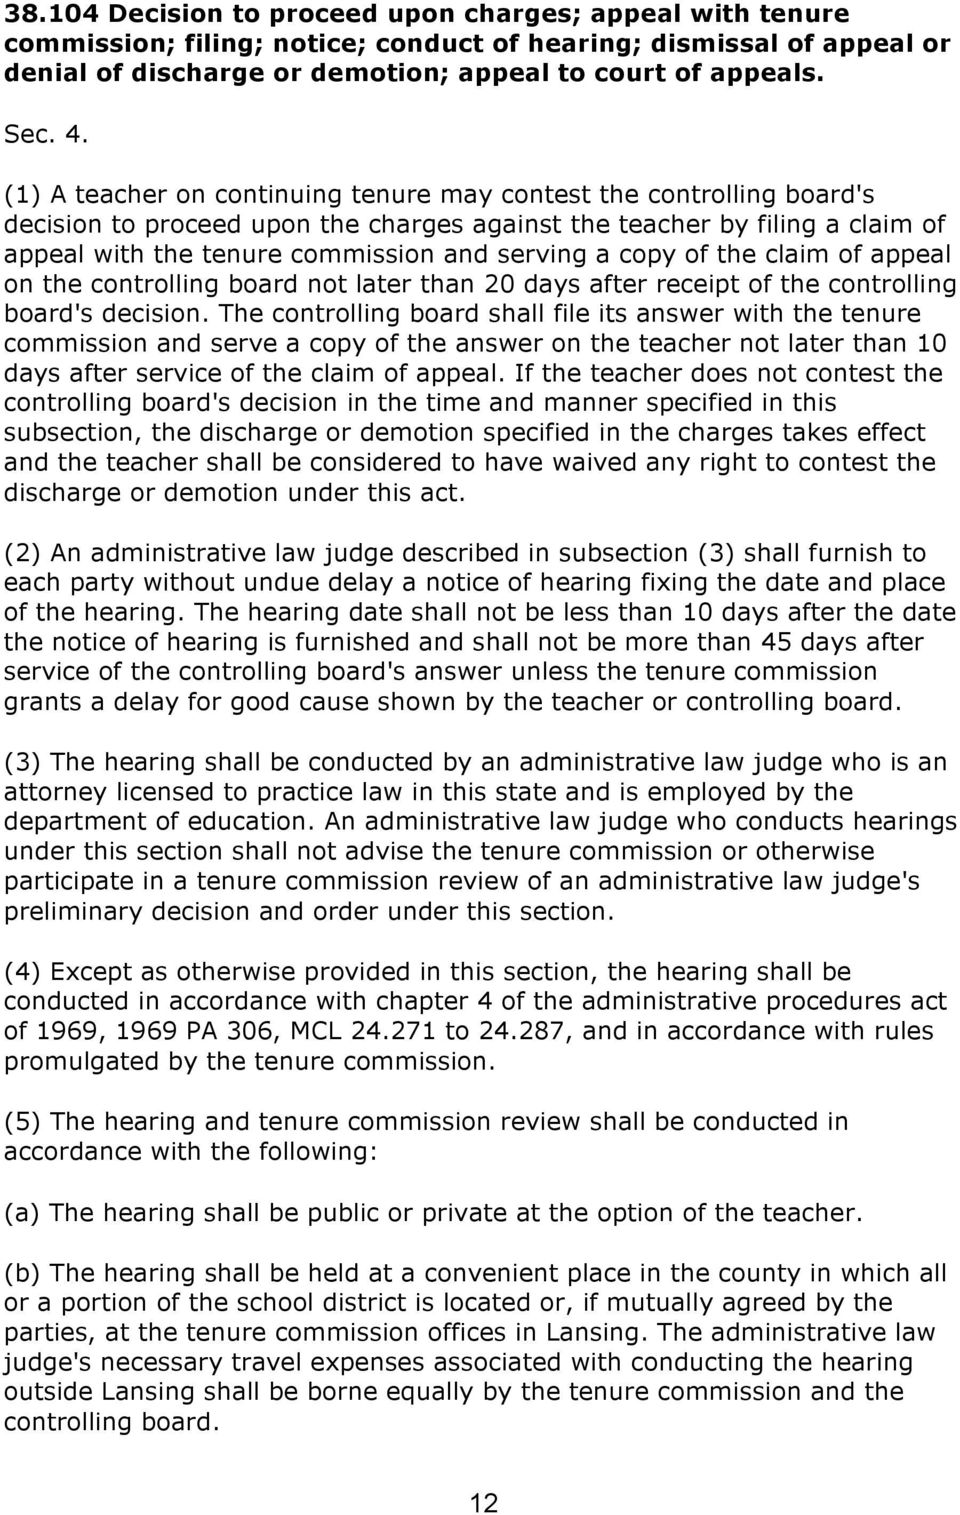 copy of the claim of appeal on the controlling board not later than 20 days after receipt of the controlling board's decision.